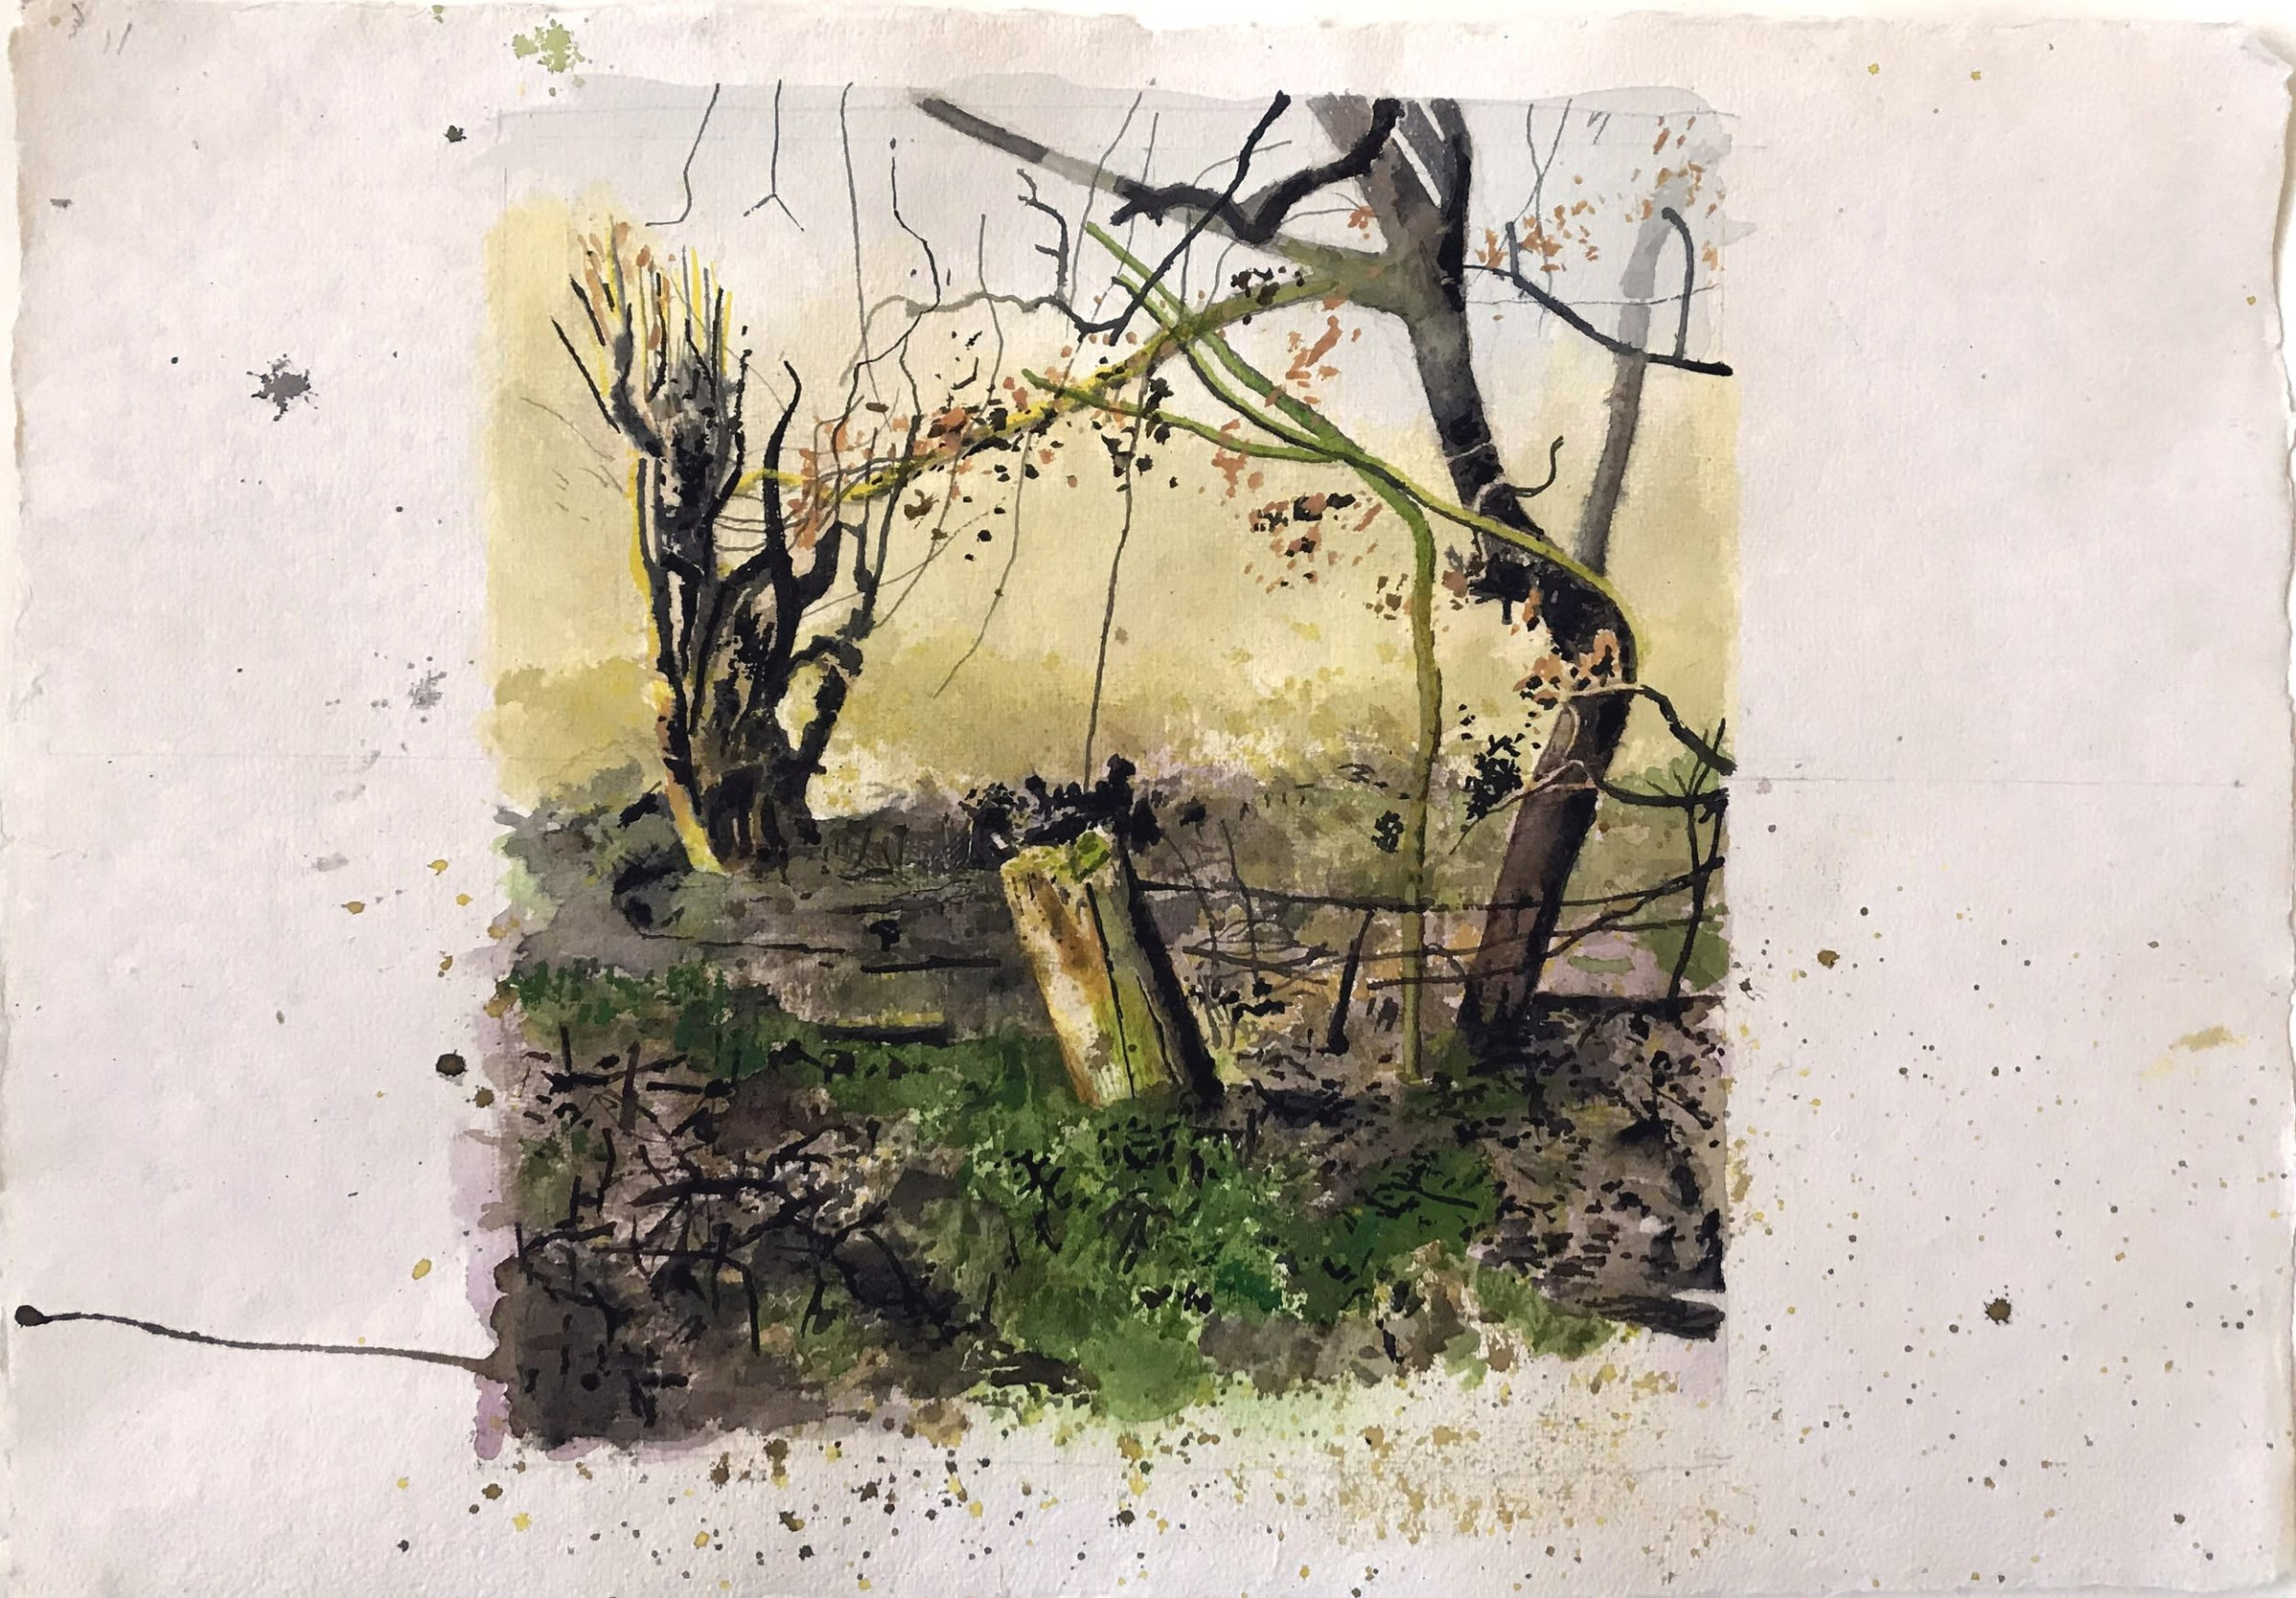 """<span class=""""link fancybox-details-link""""><a href=""""/artists/88-iain-nicholls/works/12279-iain-nicholls-elsecar-cropped-trees-study-1/"""">View Detail Page</a></span><div class=""""artist""""><span class=""""artist""""><strong>Iain Nicholls</strong></span></div><div class=""""title""""><em>Elsecar Cropped Trees Study 1</em></div><div class=""""medium"""">watercolour on paper - mounted on board</div><div class=""""dimensions"""">Artwork: 43 x 60 cm</div><div class=""""price"""">£420.00</div>"""